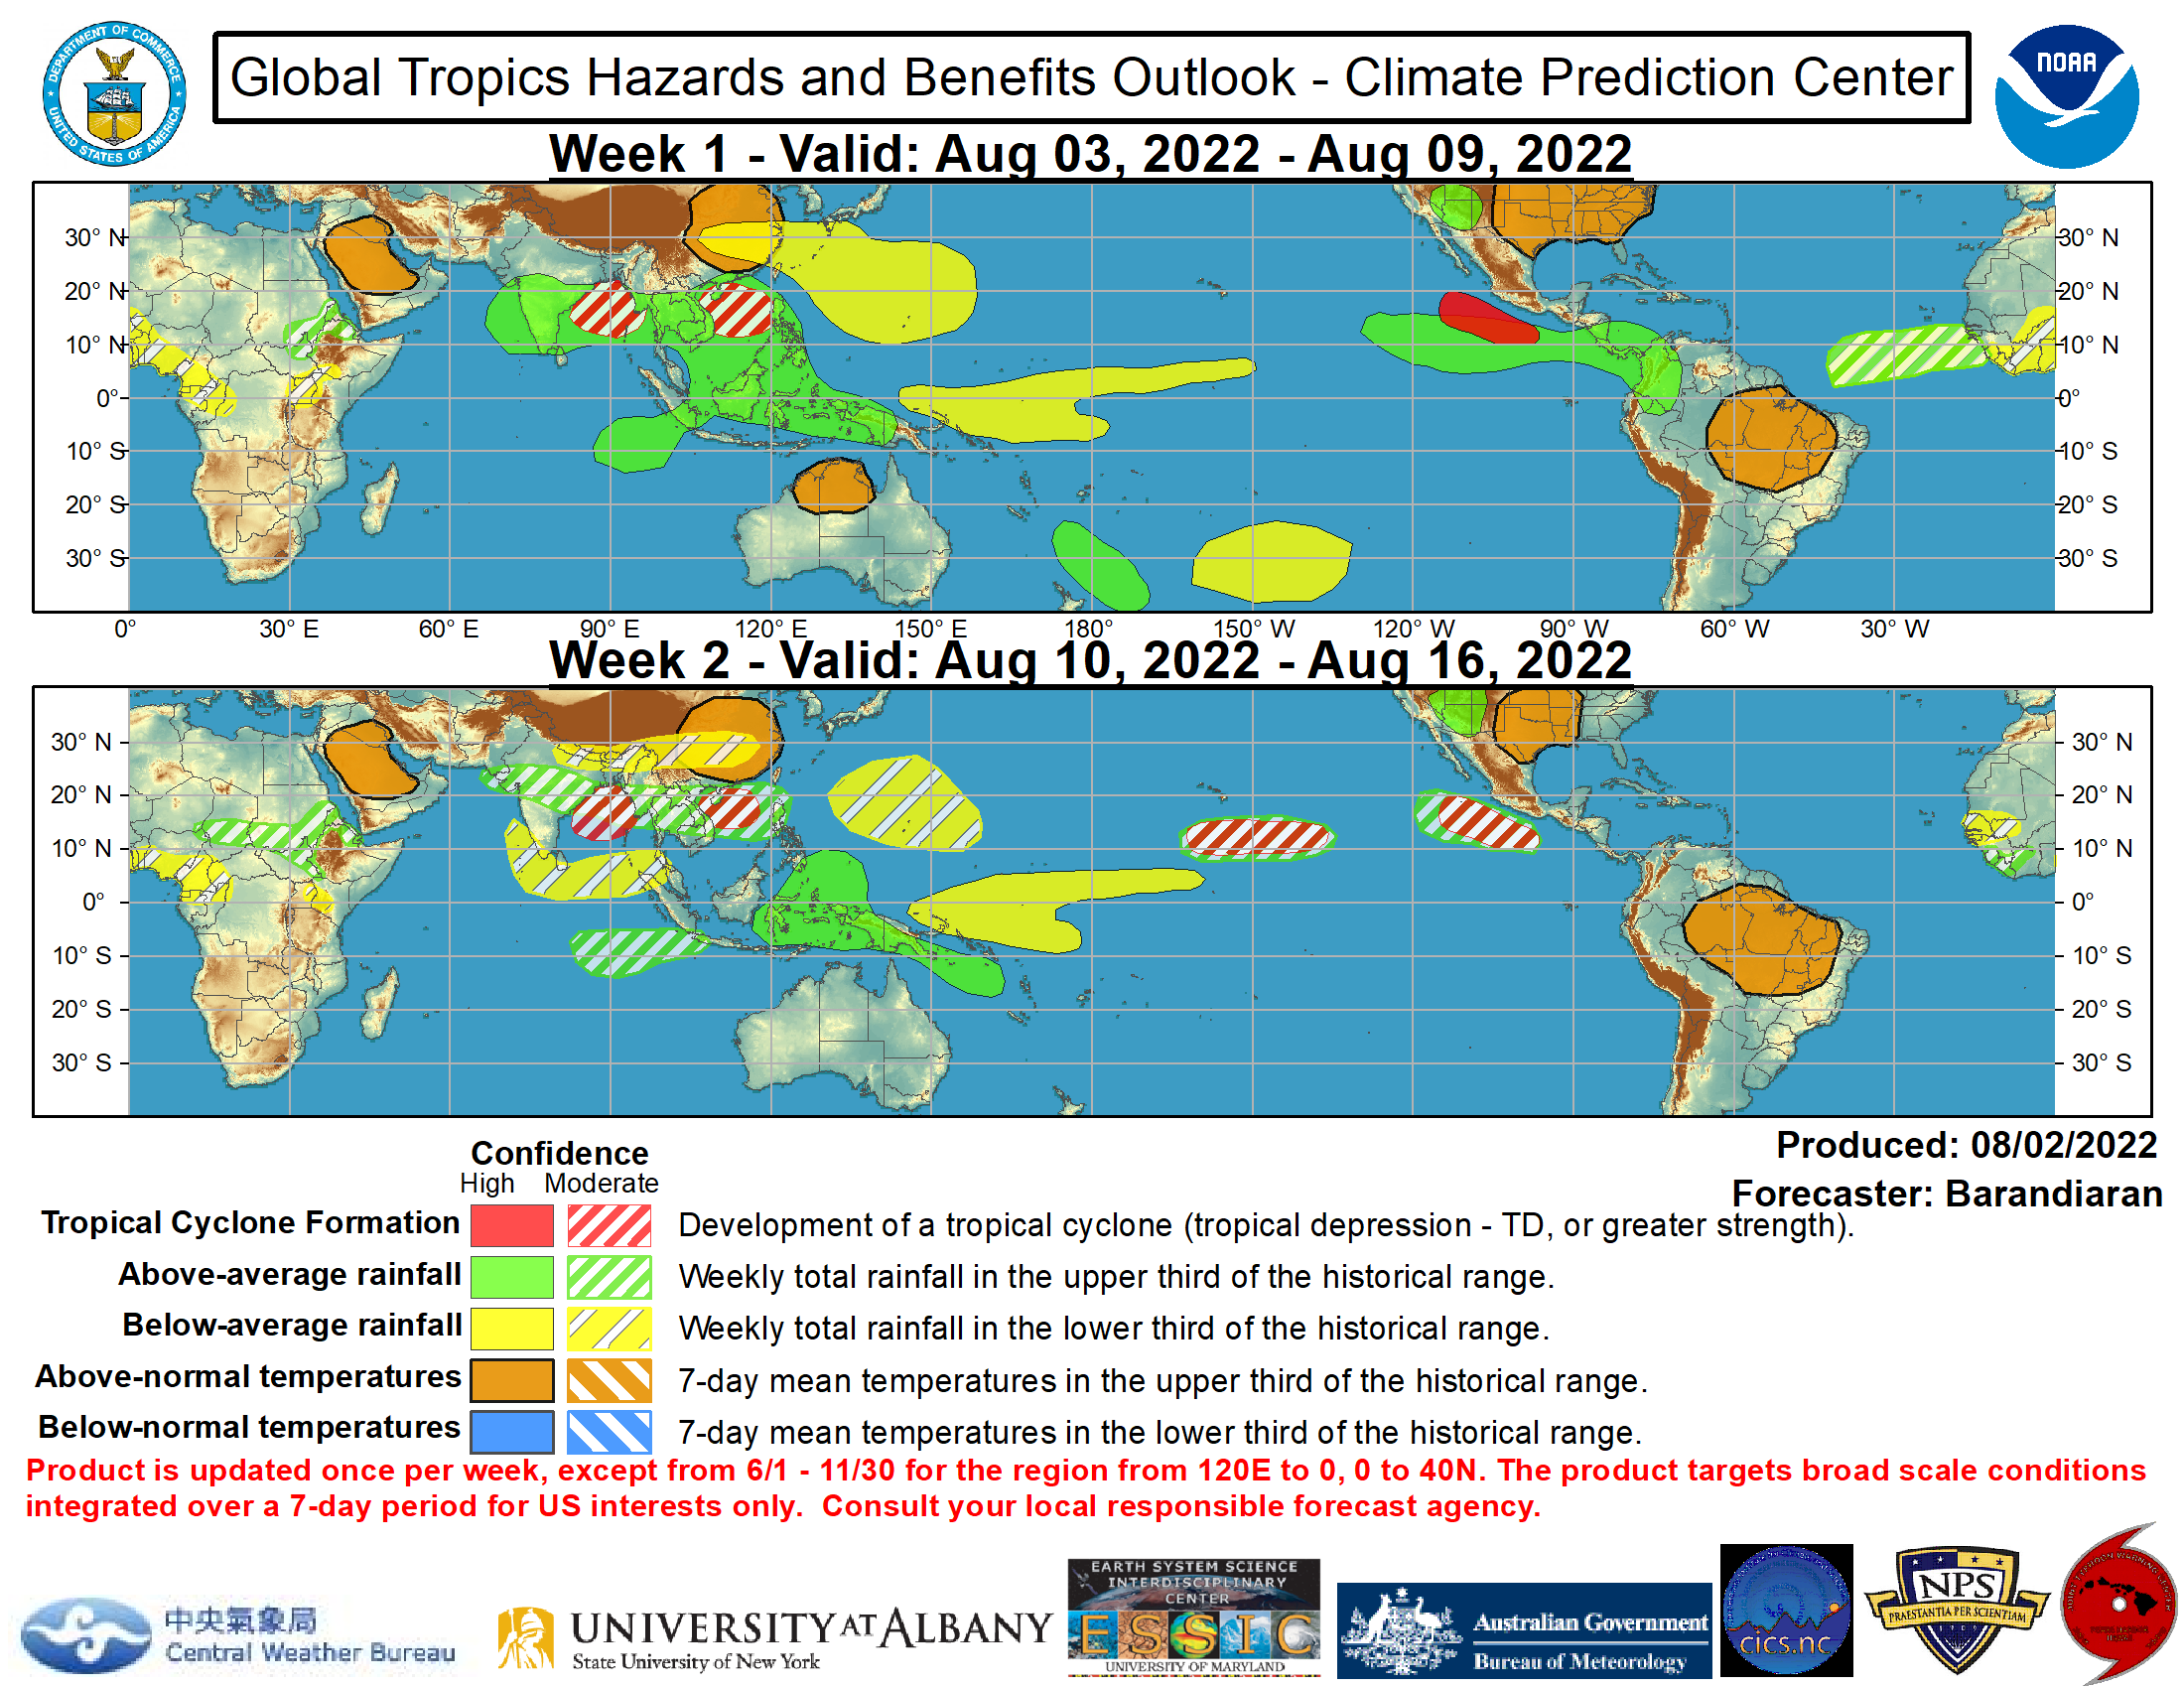 https://www.cpc.ncep.noaa.gov/products/precip/CWlink/ghazards/images/gth_small.png